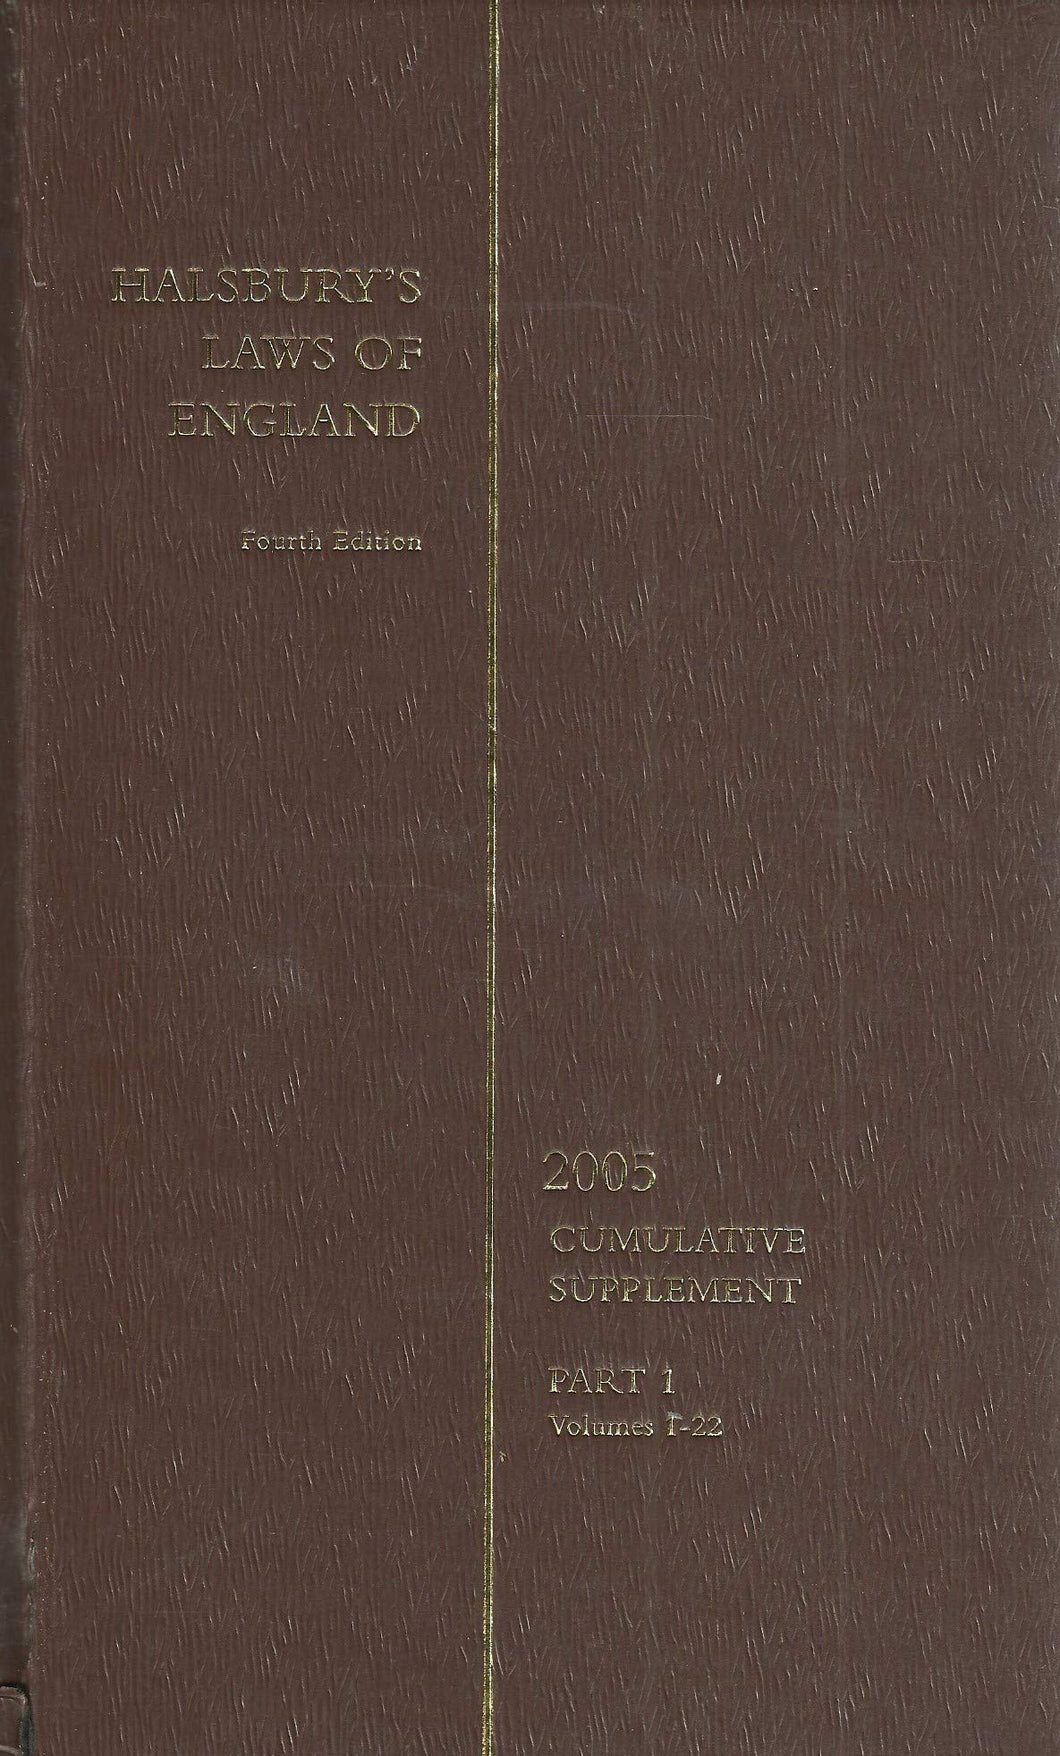 Halsbury's Laws of England - Fourth Edition, 2005 Cumulative Supplement - Part 1, Volume 1-22